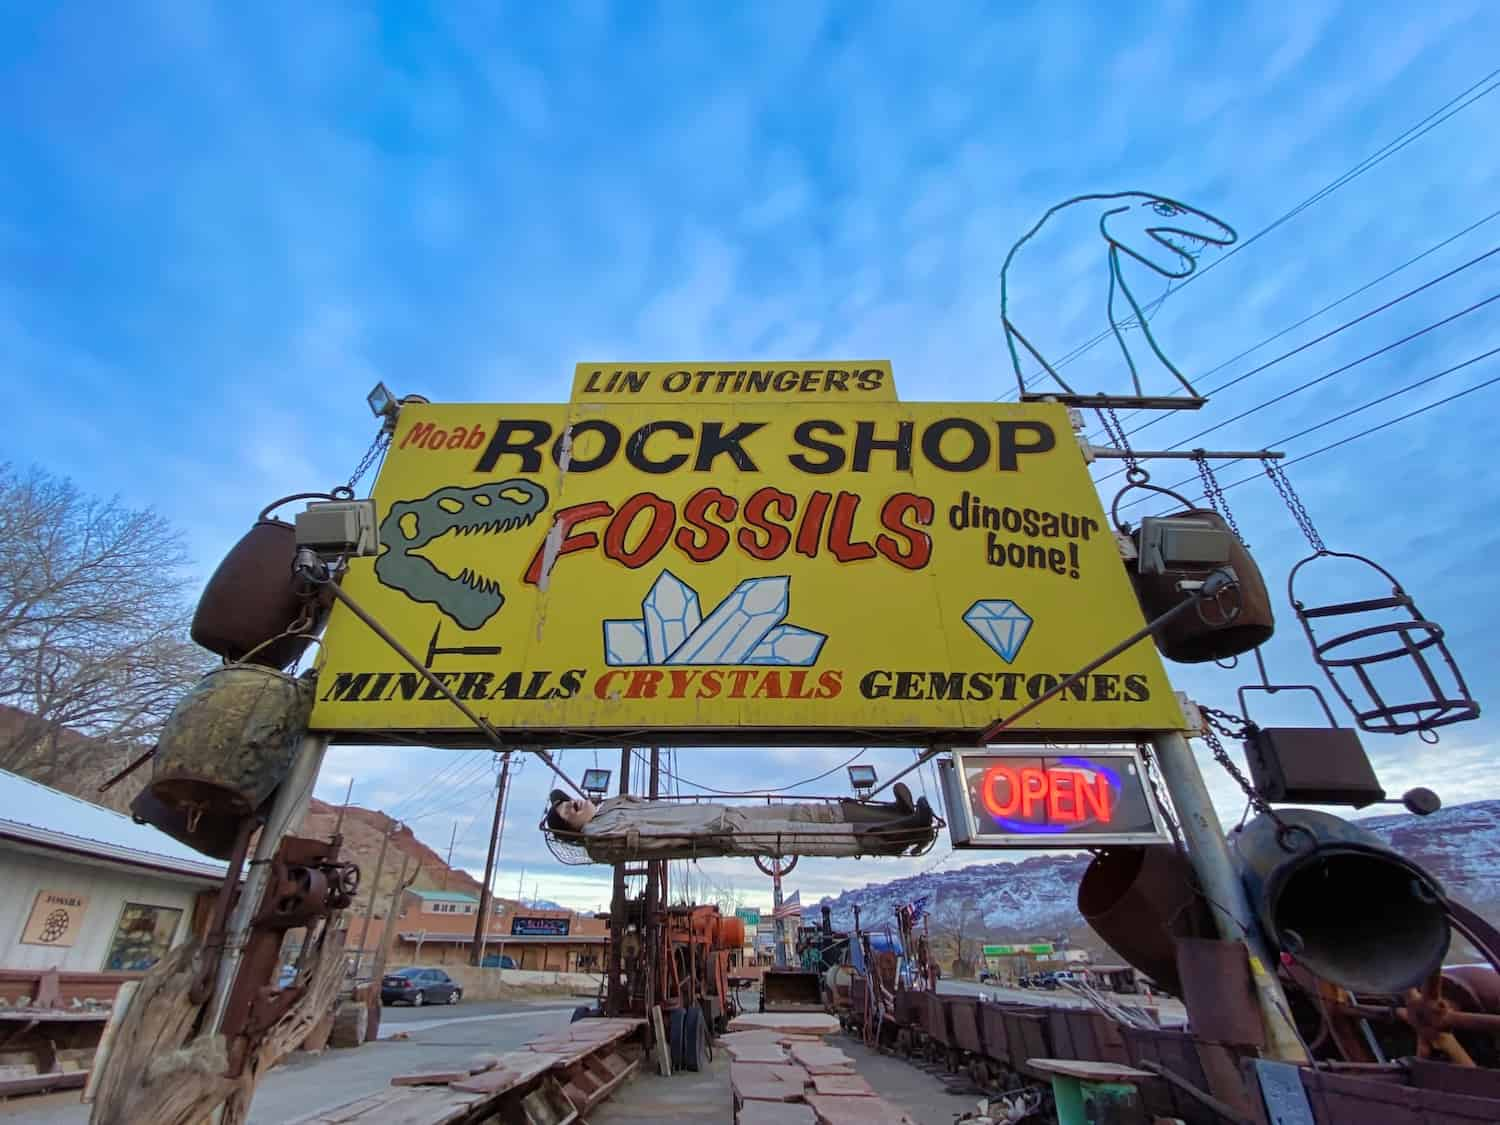 3 Days in Moab - Rock Shop